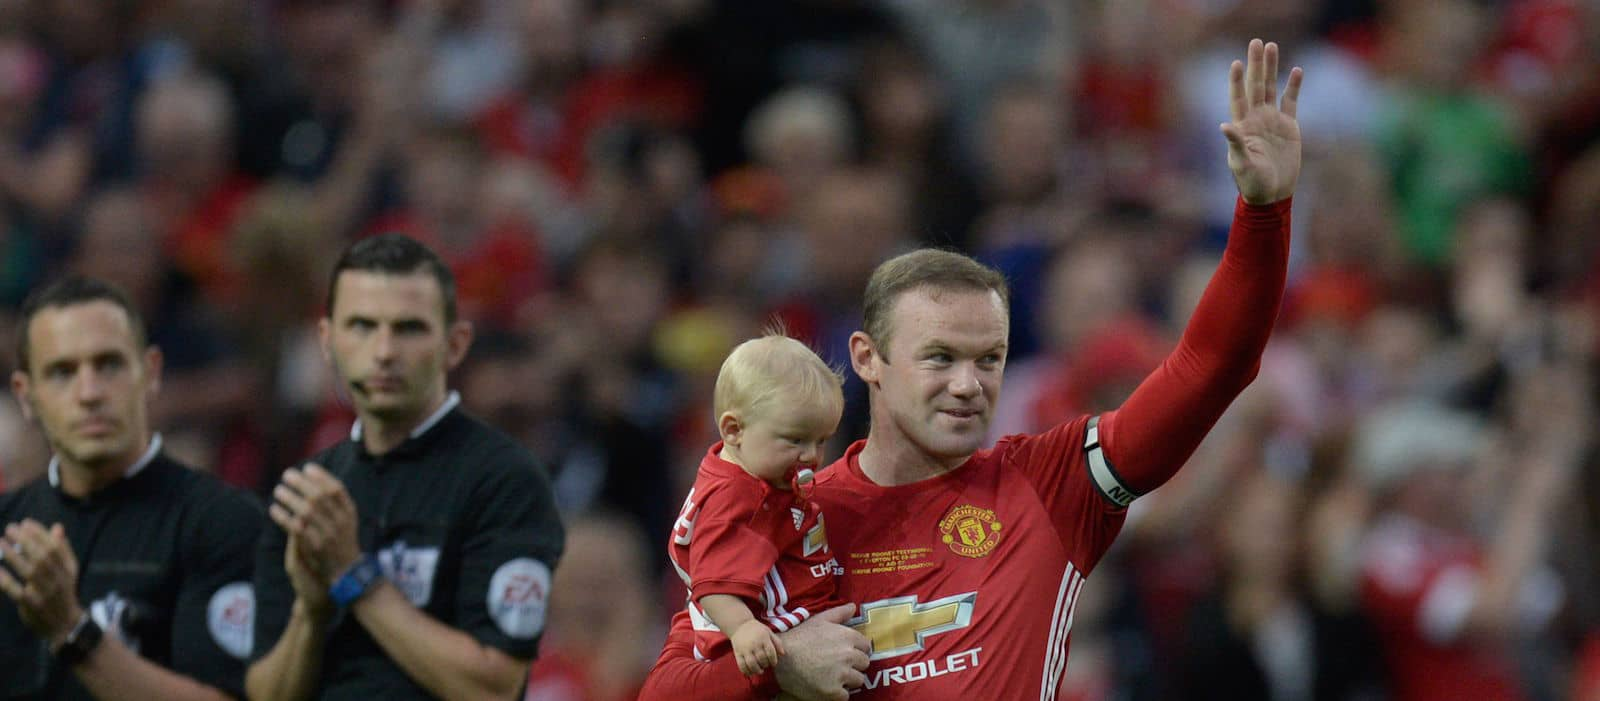 Forlan Wayne Rooney criticism at Manchester United is unfair